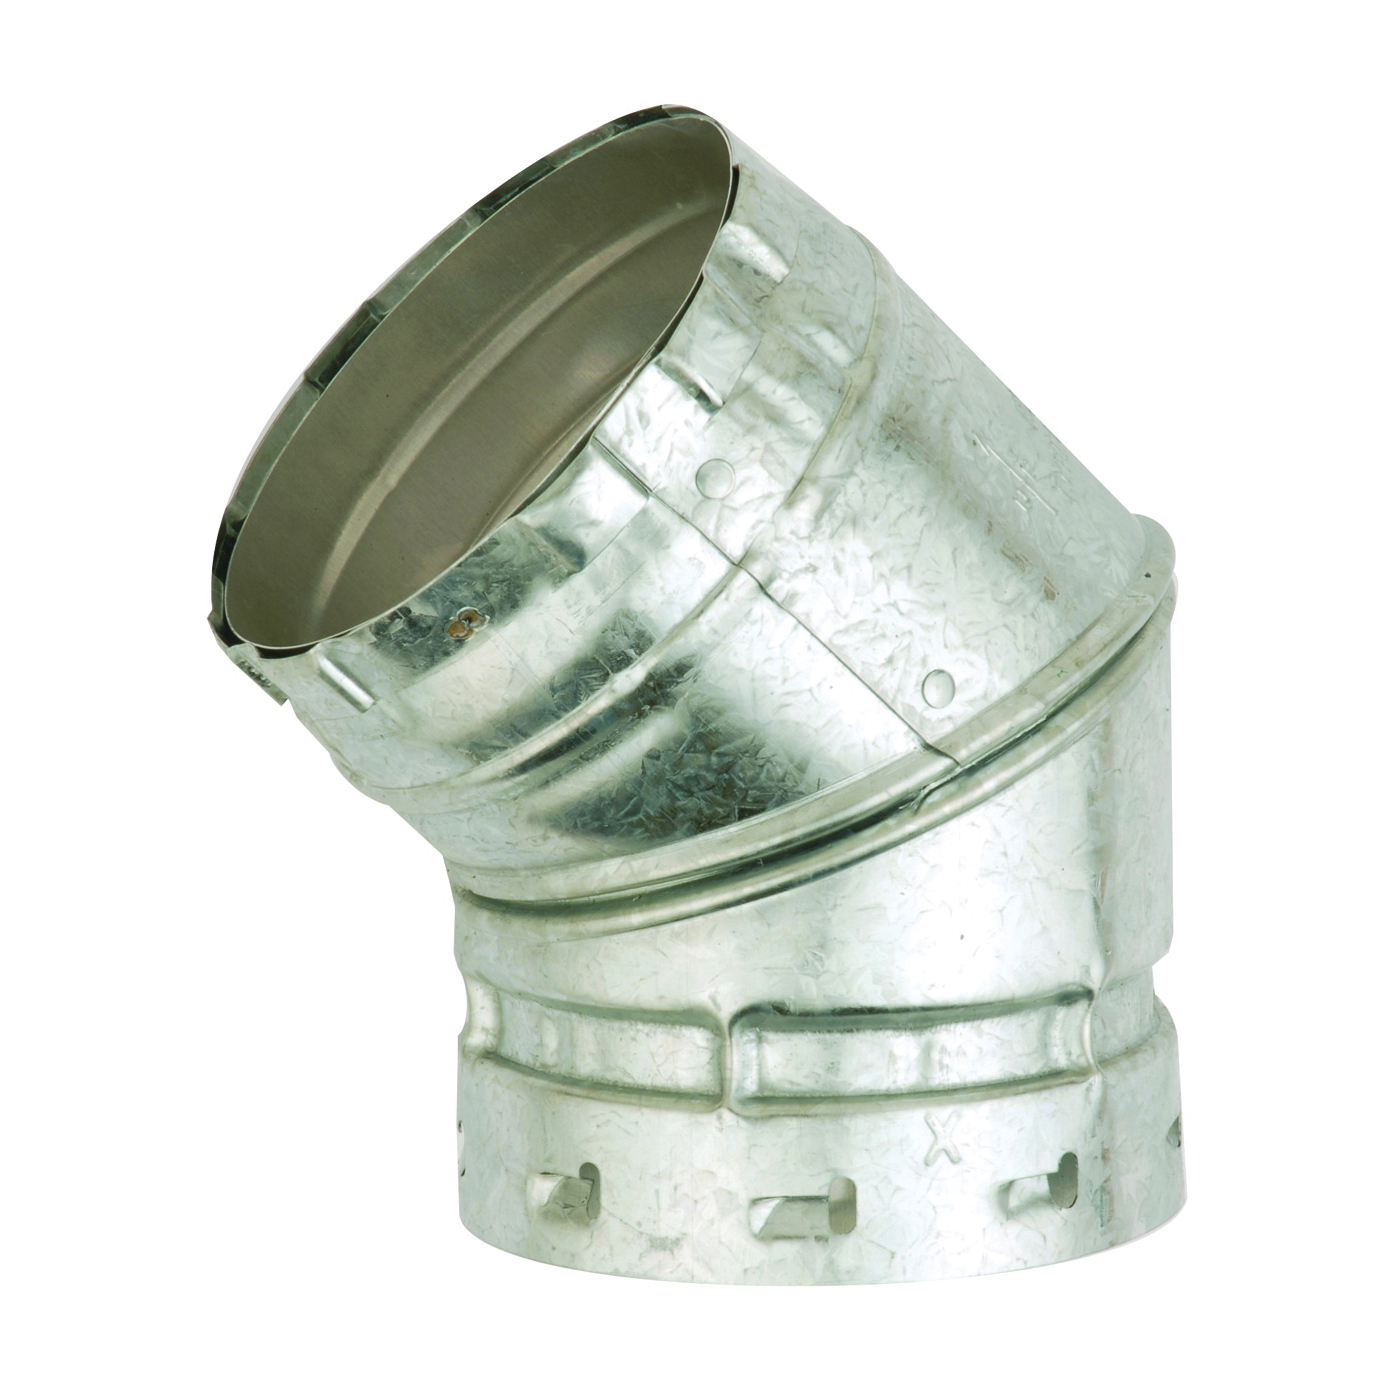 Picture of AmeriVent 3E45 Elbow, 3 in Connection, 0.018/0.012 Gauge, Aluminum/Steel, Galvanized